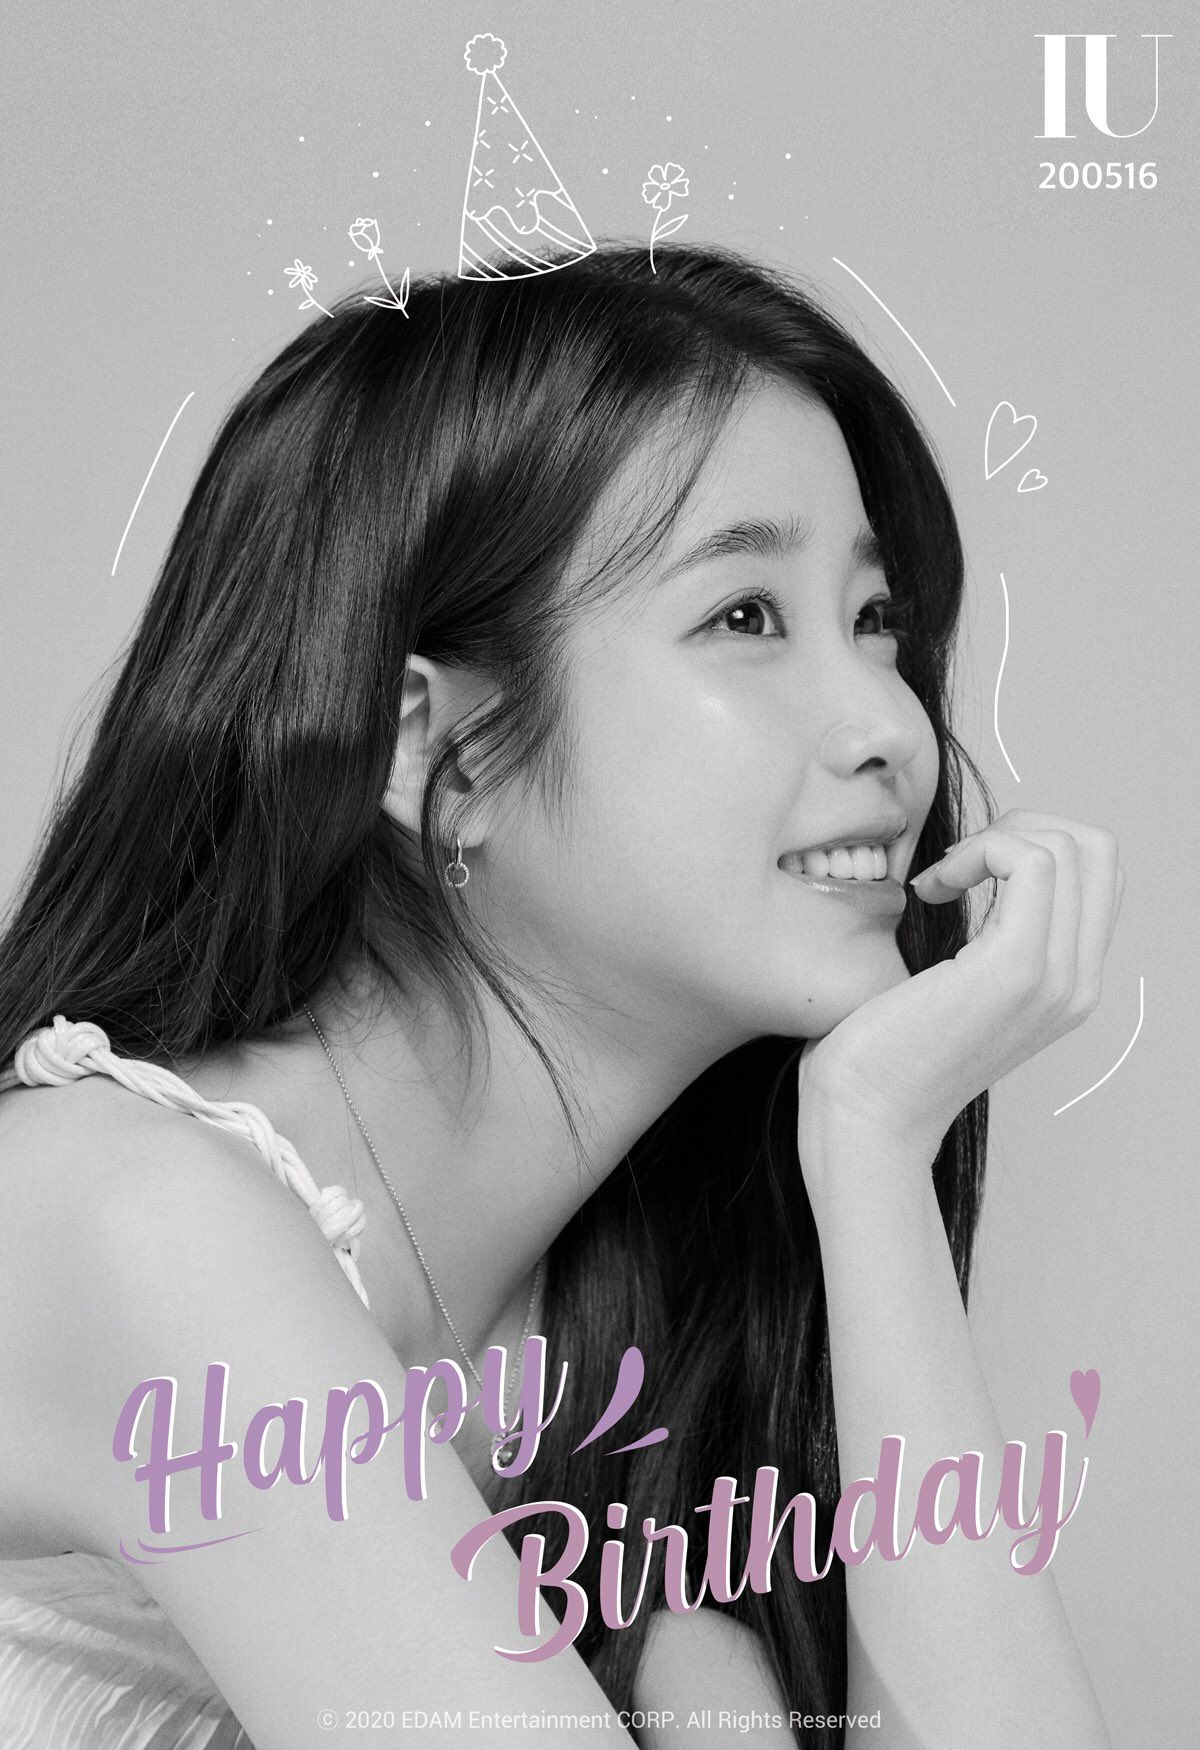 Wishes For Birthday For Idol